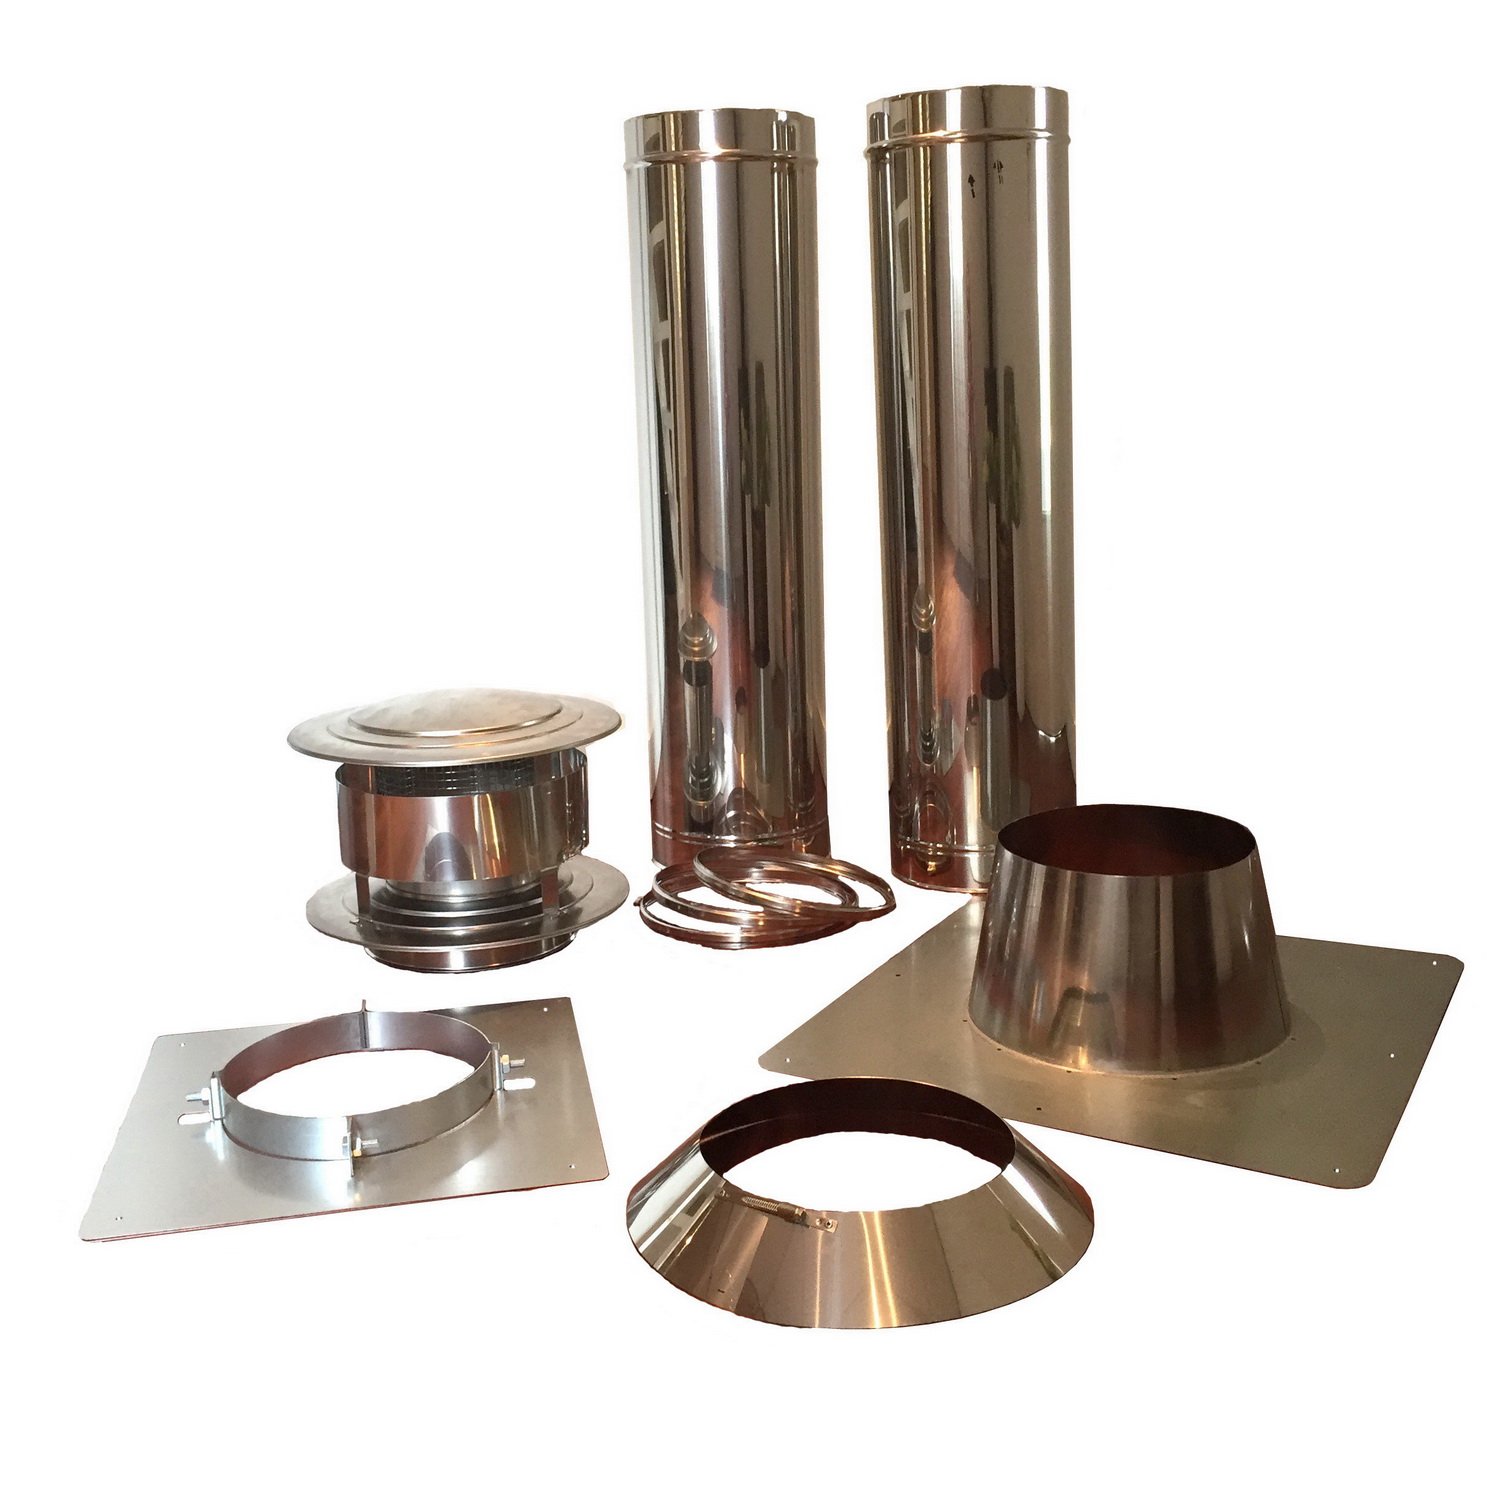 Double Wall Chimney set 200mm